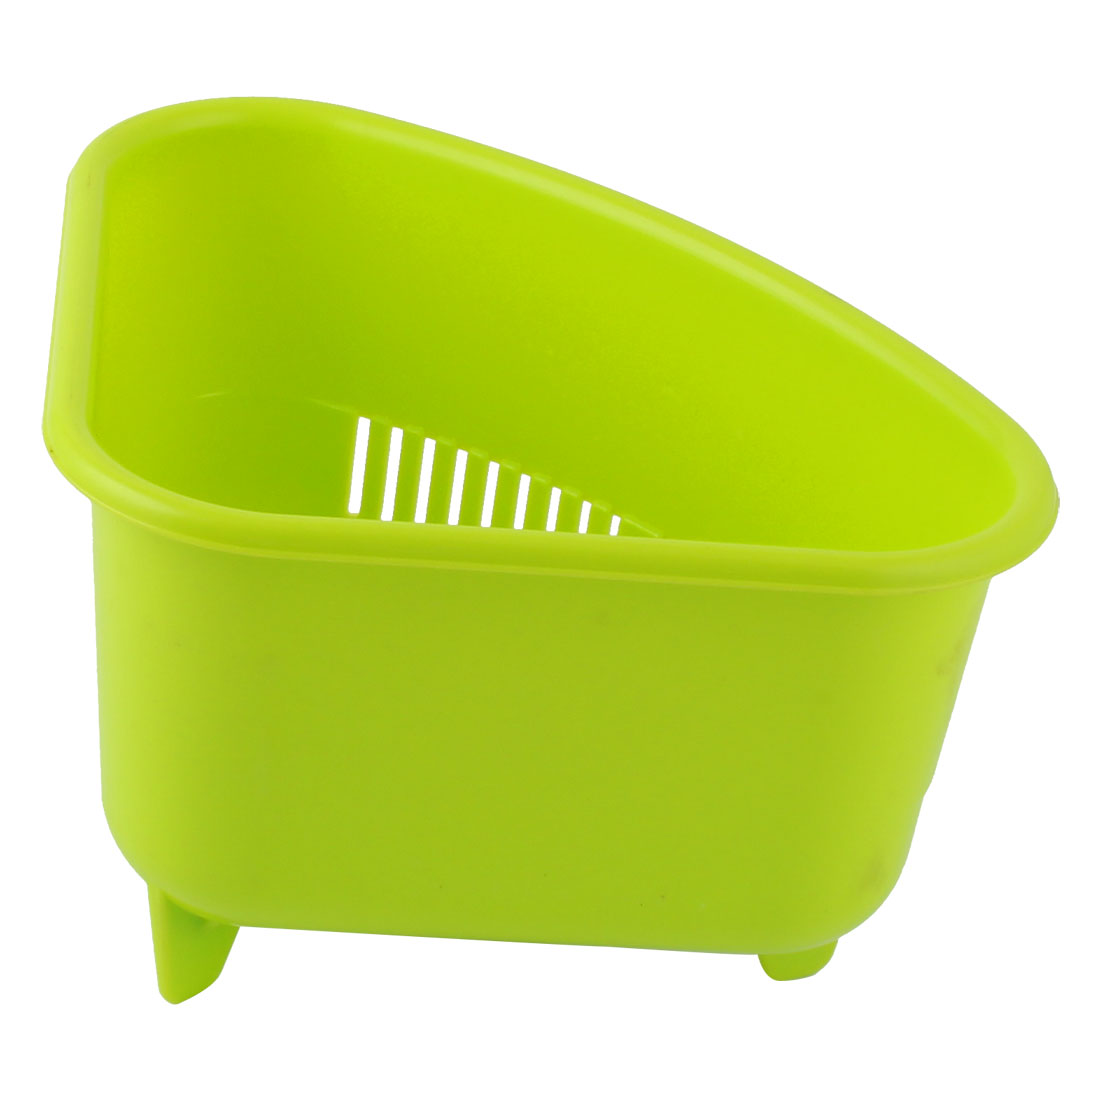 Household Kitchen Plastic Triangle Shaped Fruit Vegetables Drain Basket Holder Container Green